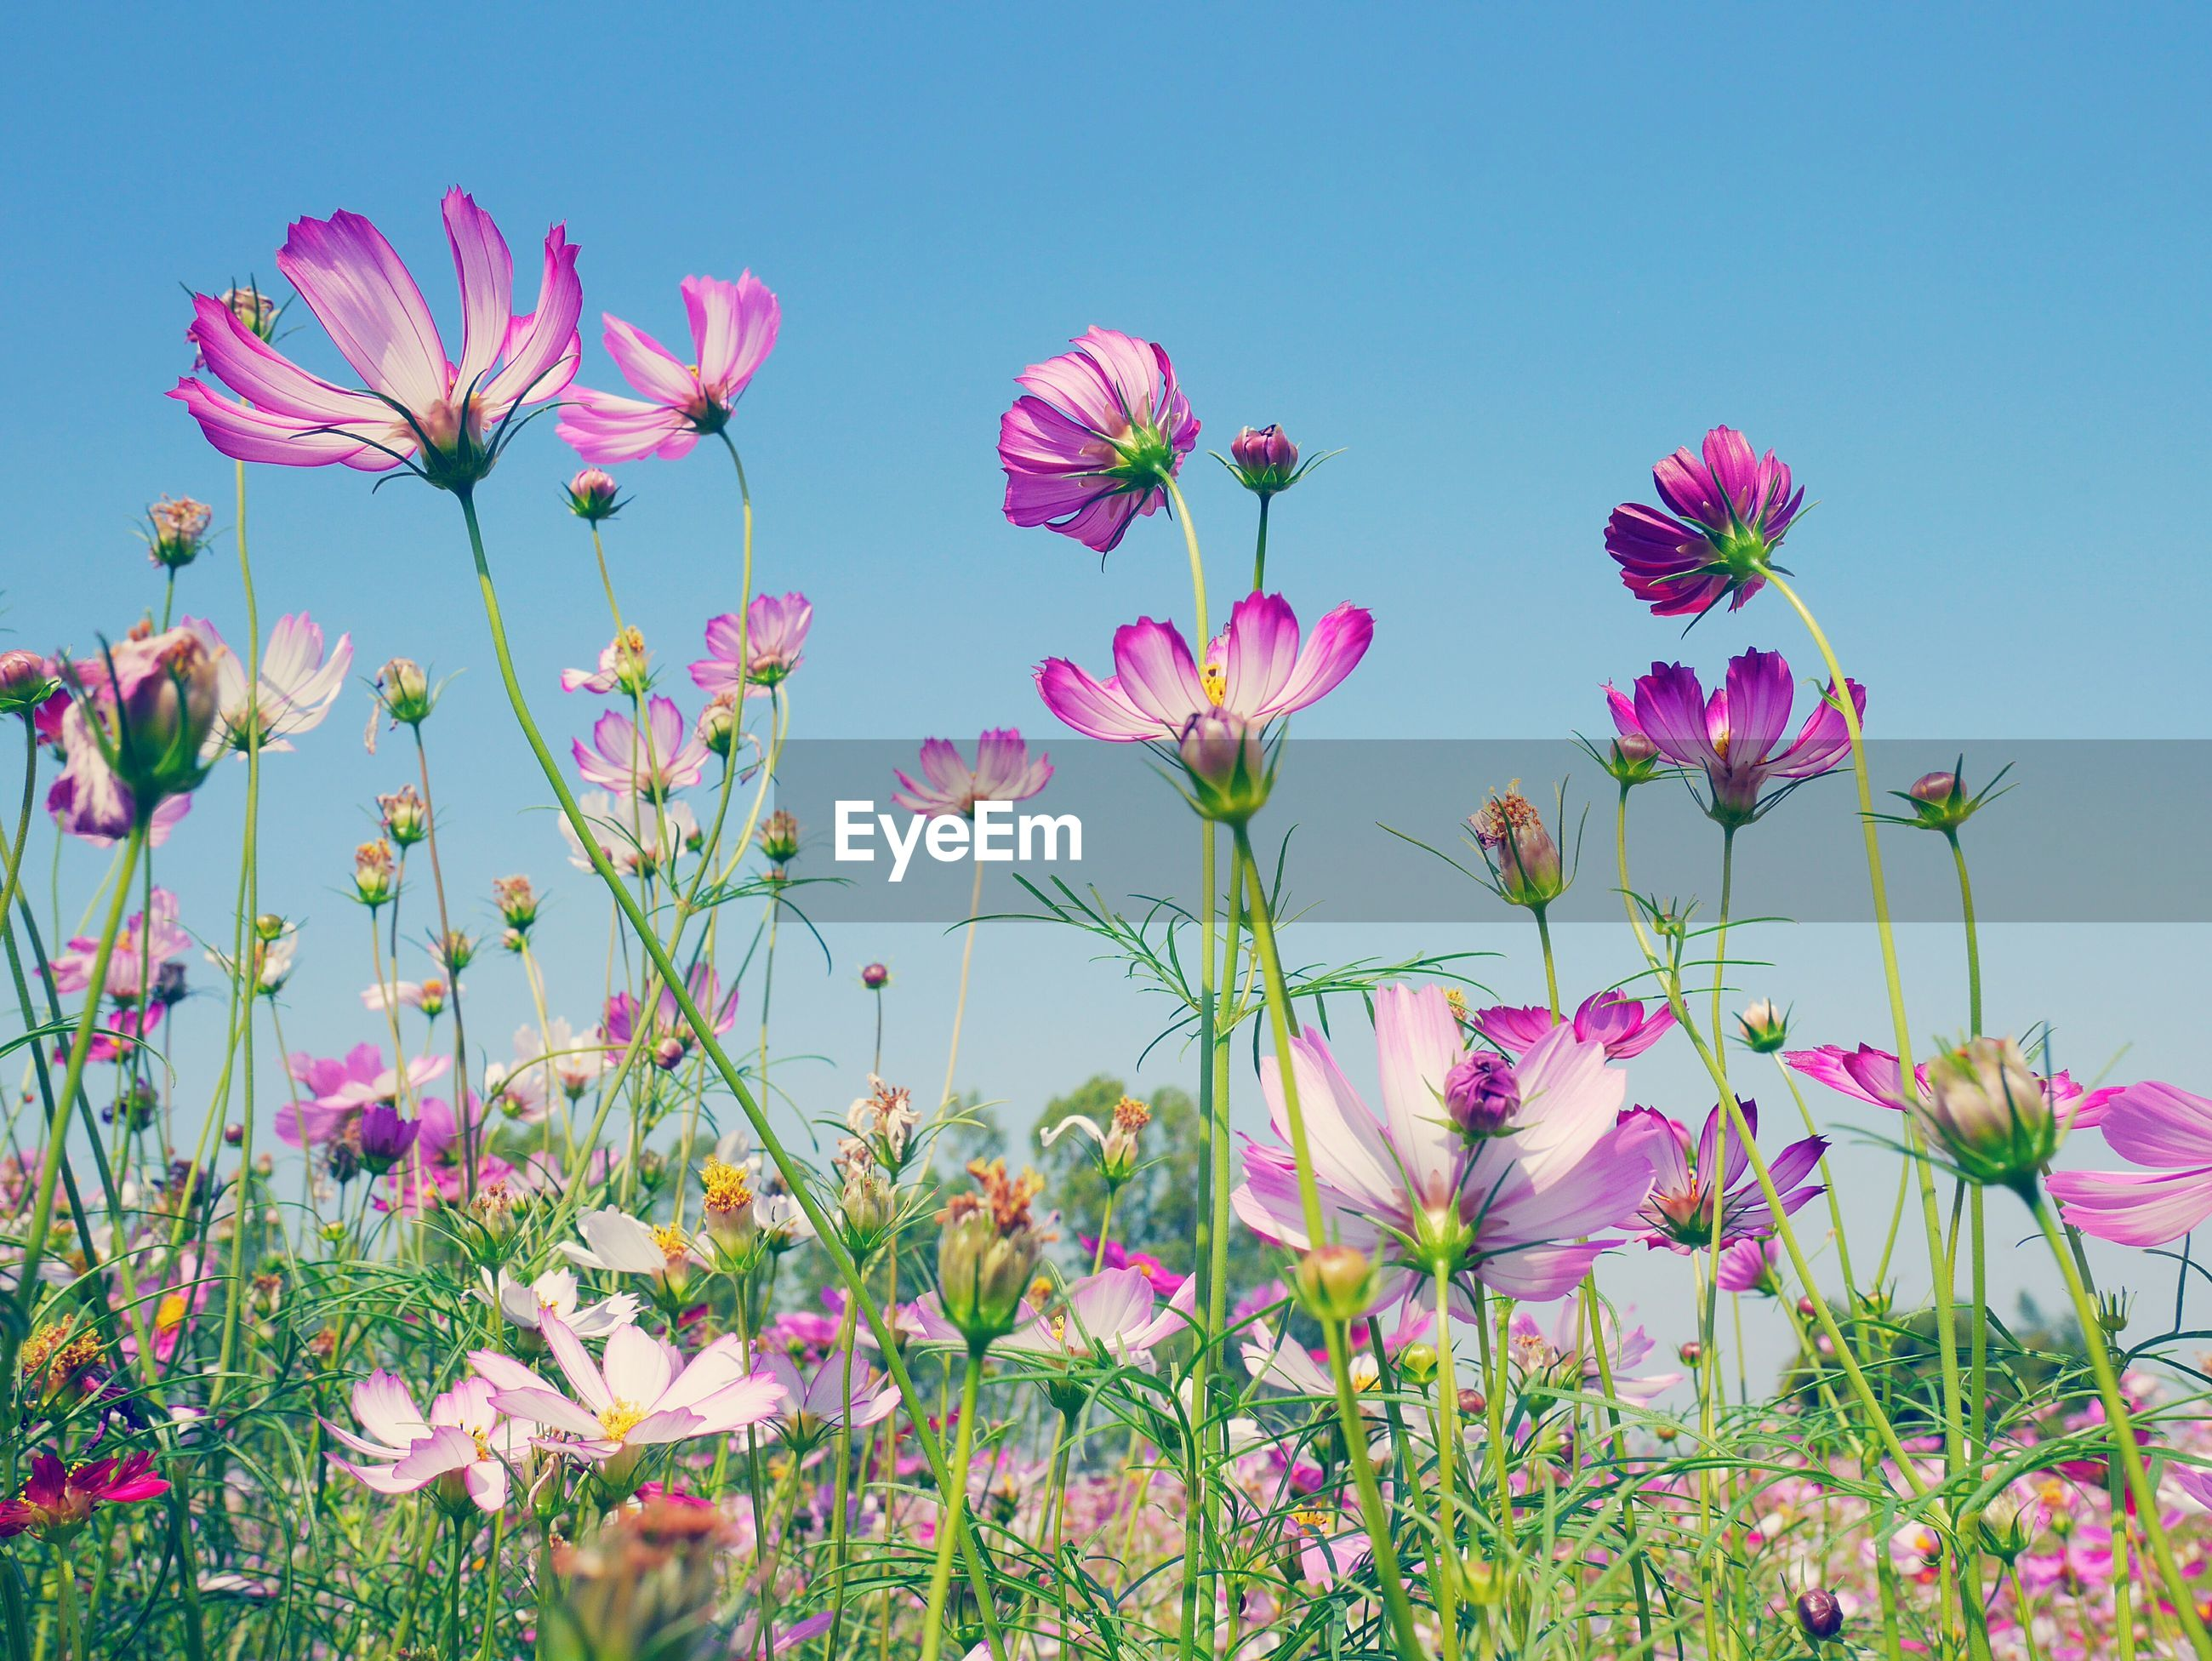 CLOSE-UP OF PINK COSMOS BLOOMING ON FIELD AGAINST SKY